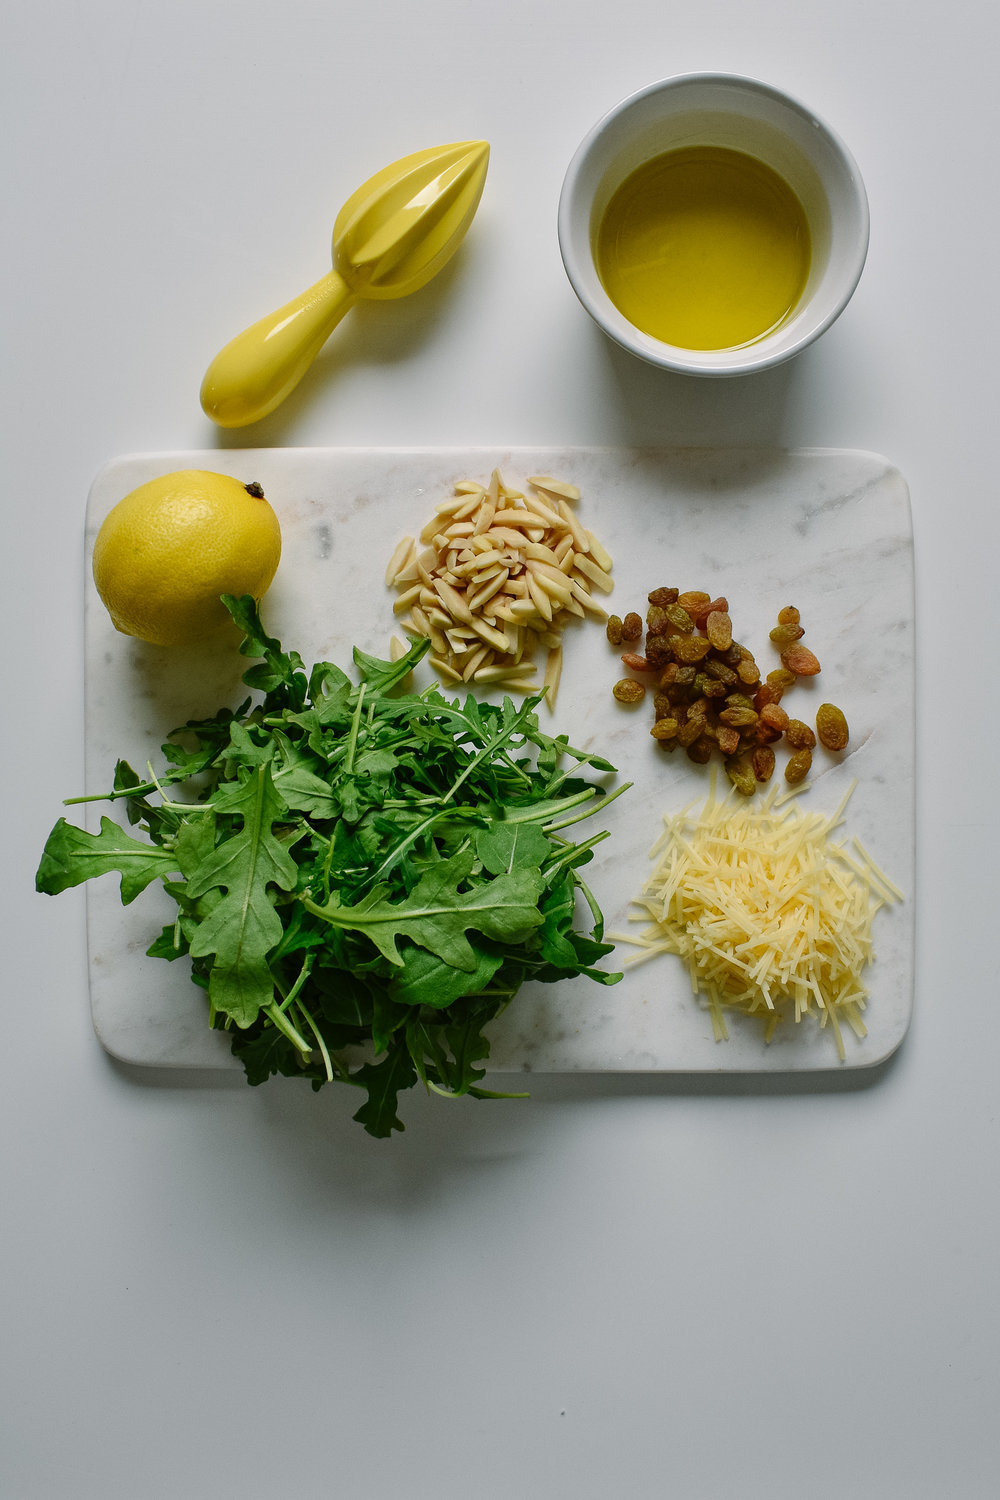 Arugula salad with golden raisins, almonds, and parmesan cheese